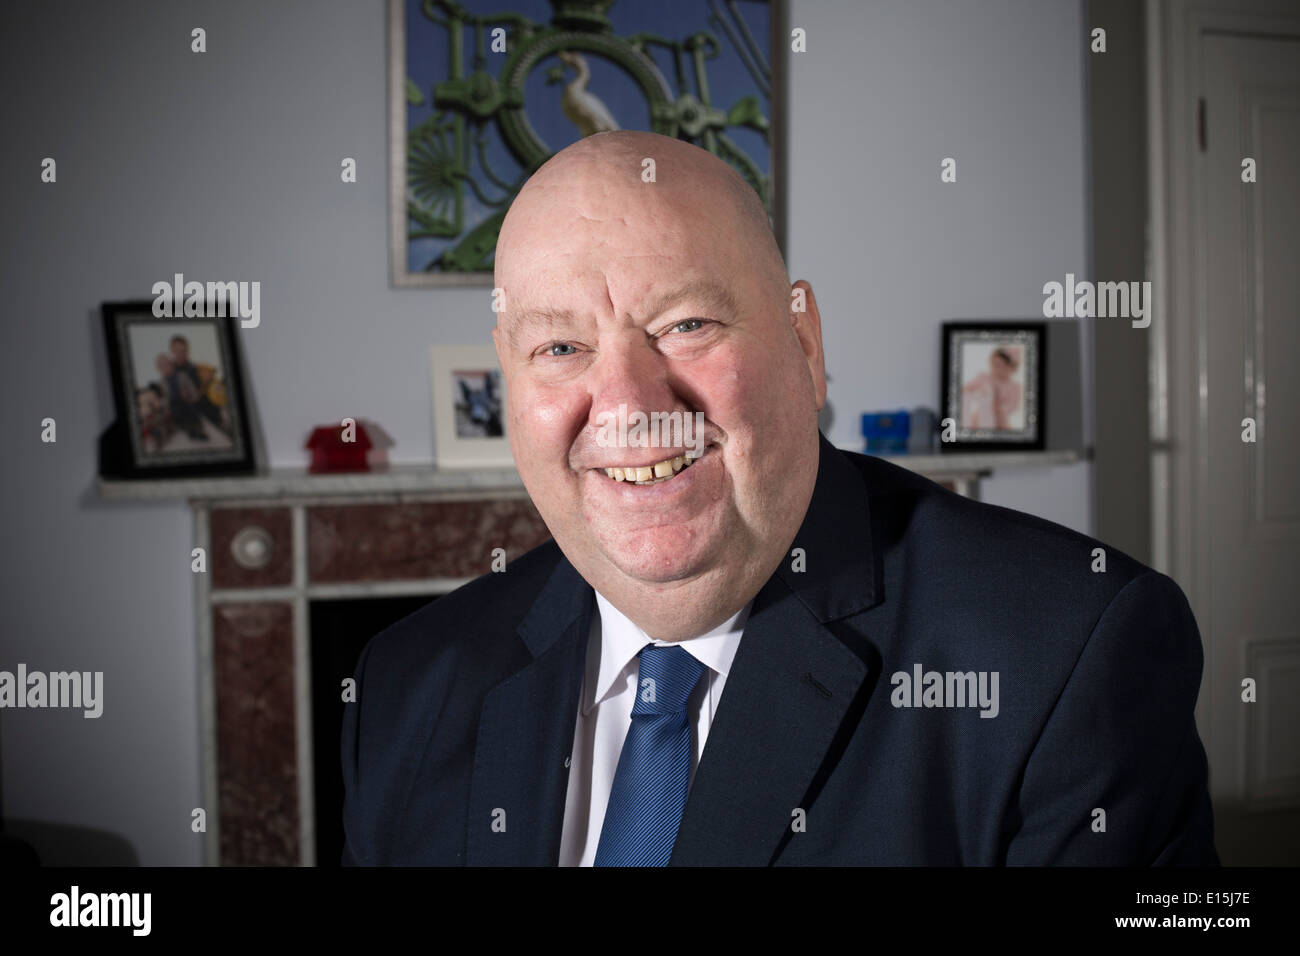 The Mayor of Liverpool, Joe Anderson, pictured in his office at the Municipal Buildings in the city. - Stock Image